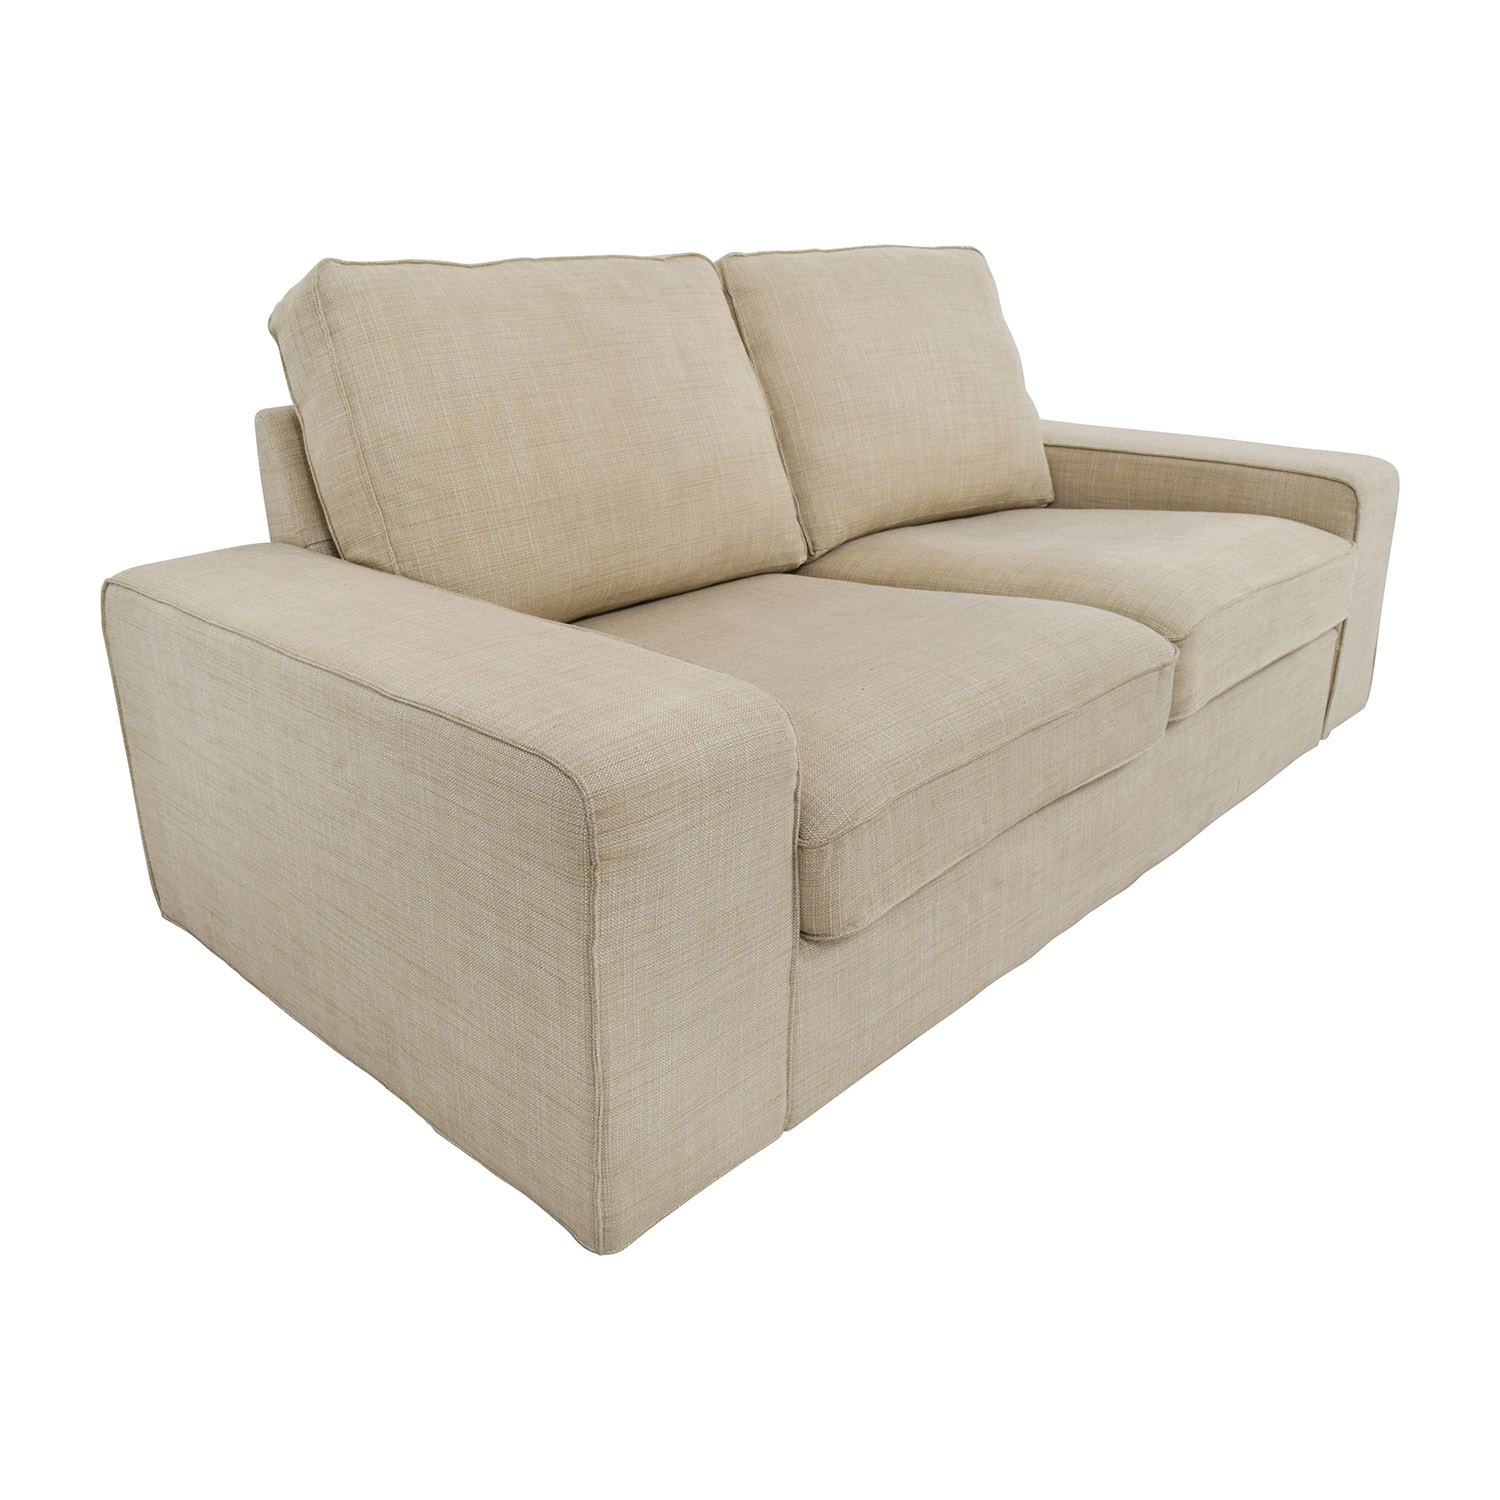 68 Off Ikea Light Beige Fabric Loveseat Sofas